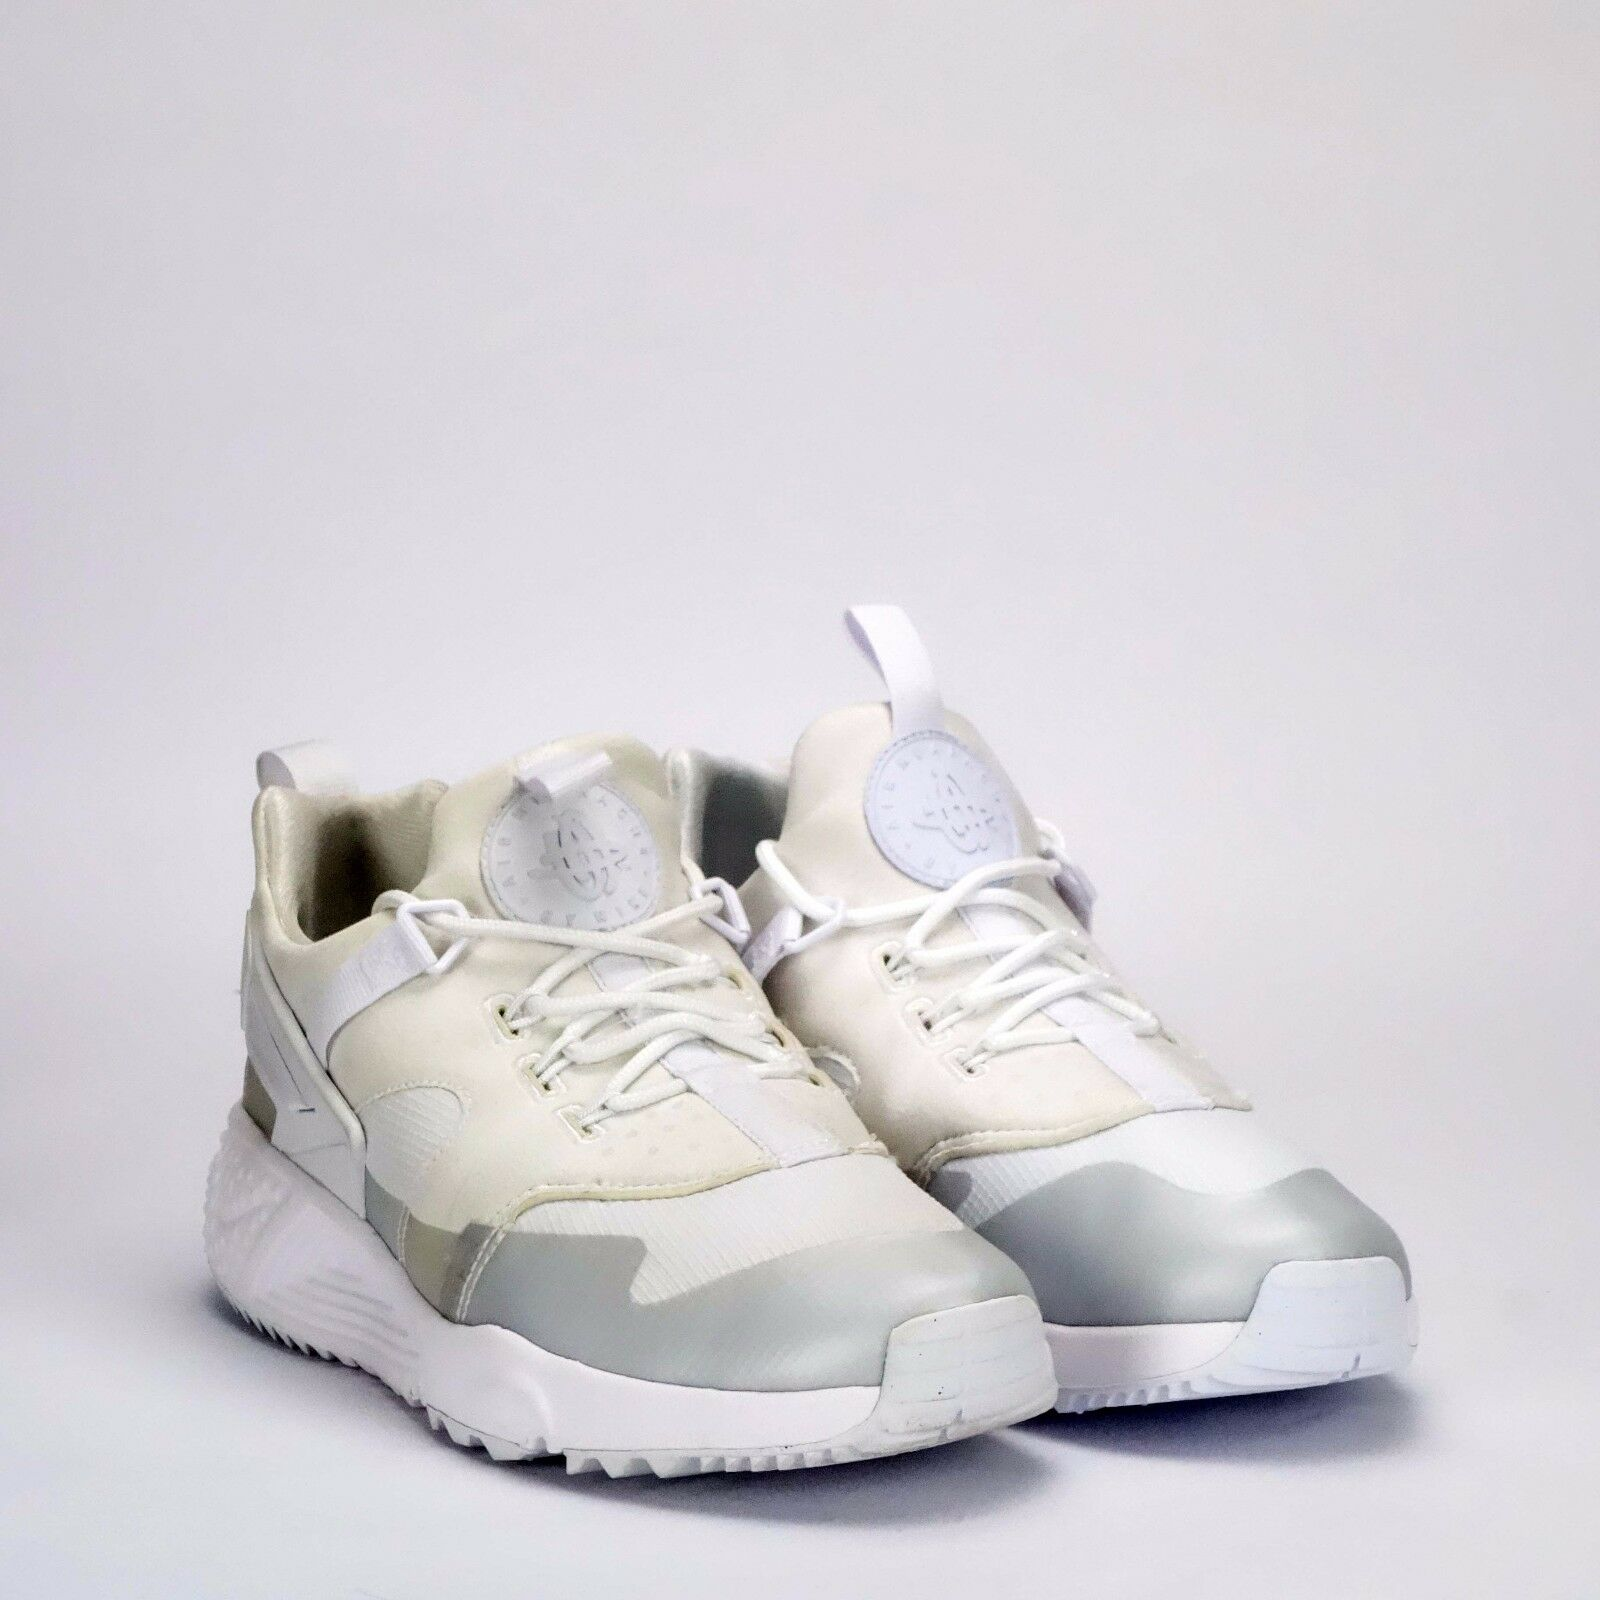 Nike Air Huarache Utility Men's Shoes White *Ex Display